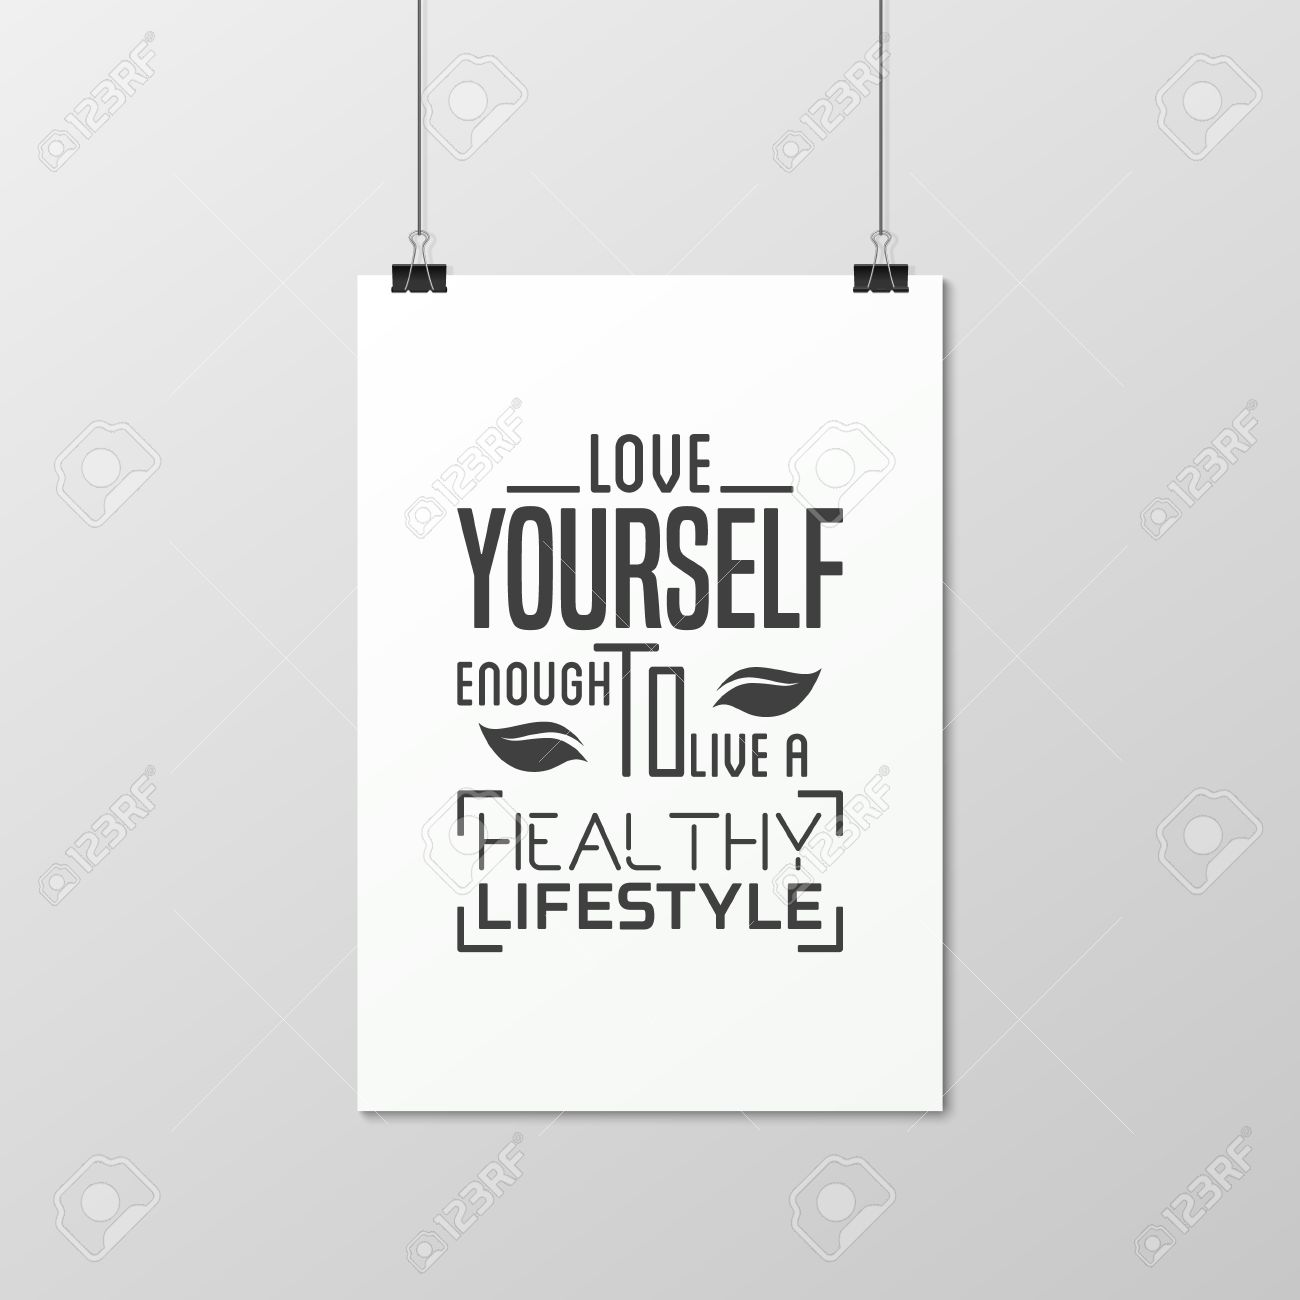 Love Yourself Enough To Live A Healthy Lifestyle   Quote Typographical  Background On The Poster.